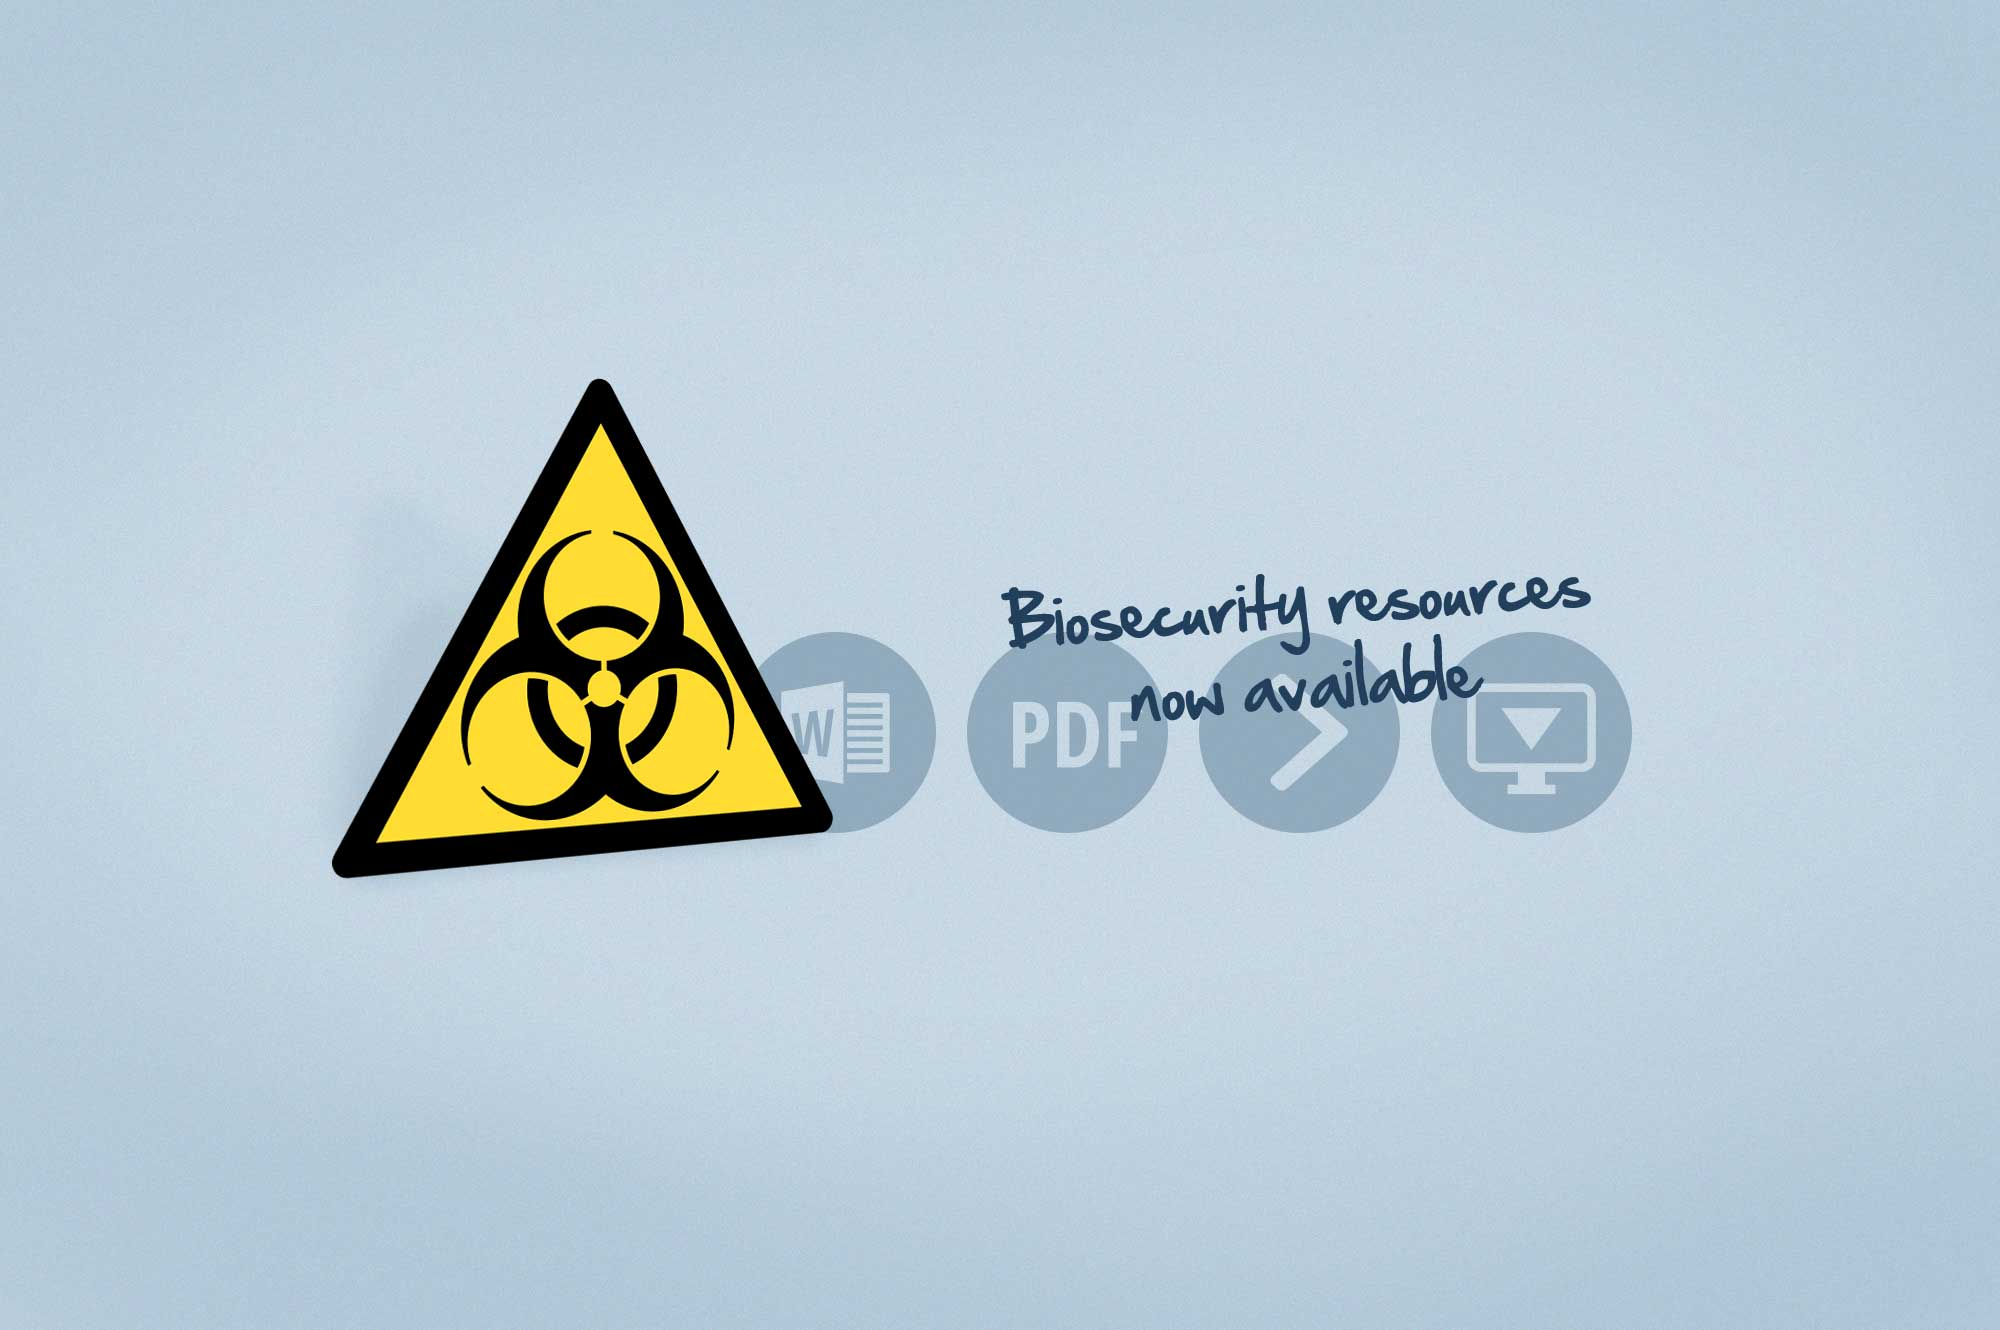 Biosecurity Resources now available